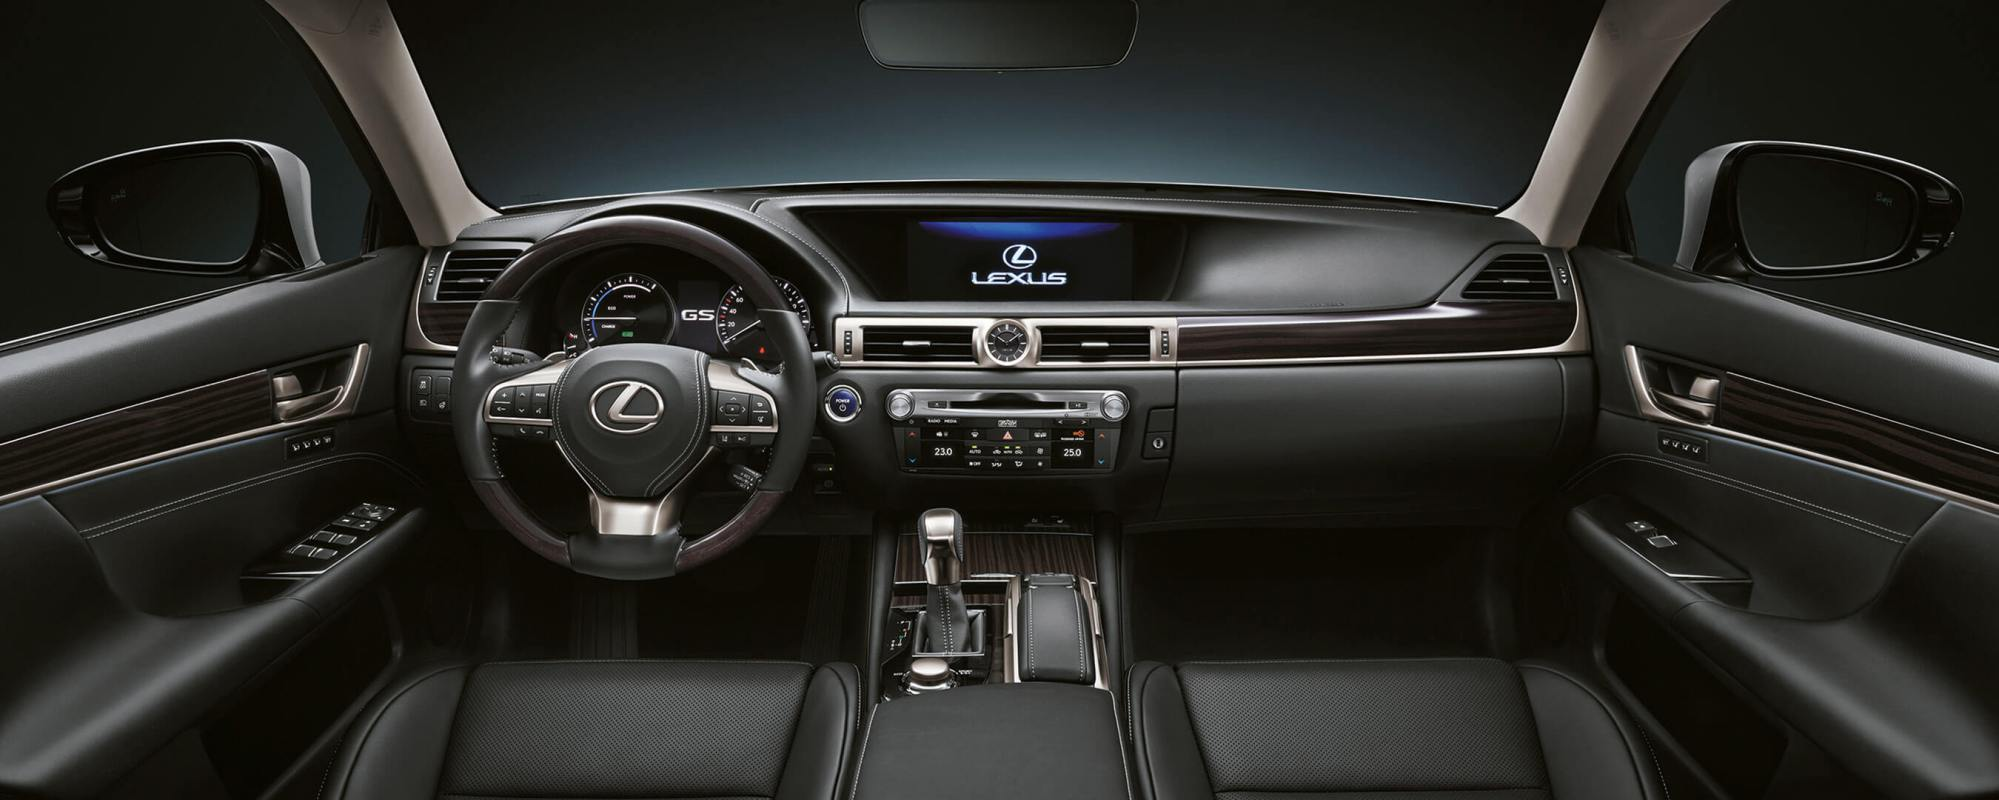 hight resolution of 2017 lexus gs 450h experience hero interior front